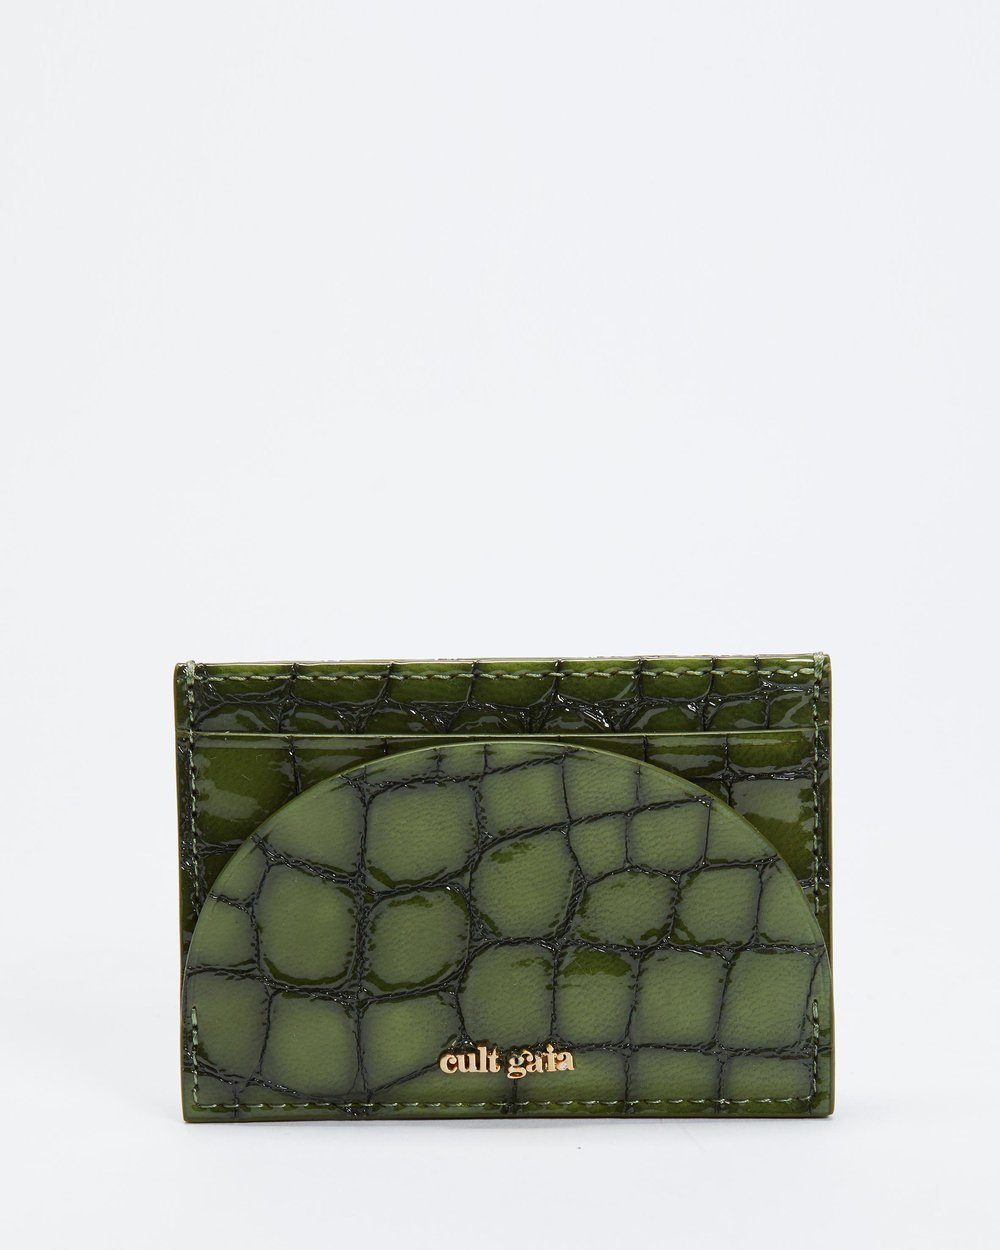 shop 邪教盖亚 wallets & card holders